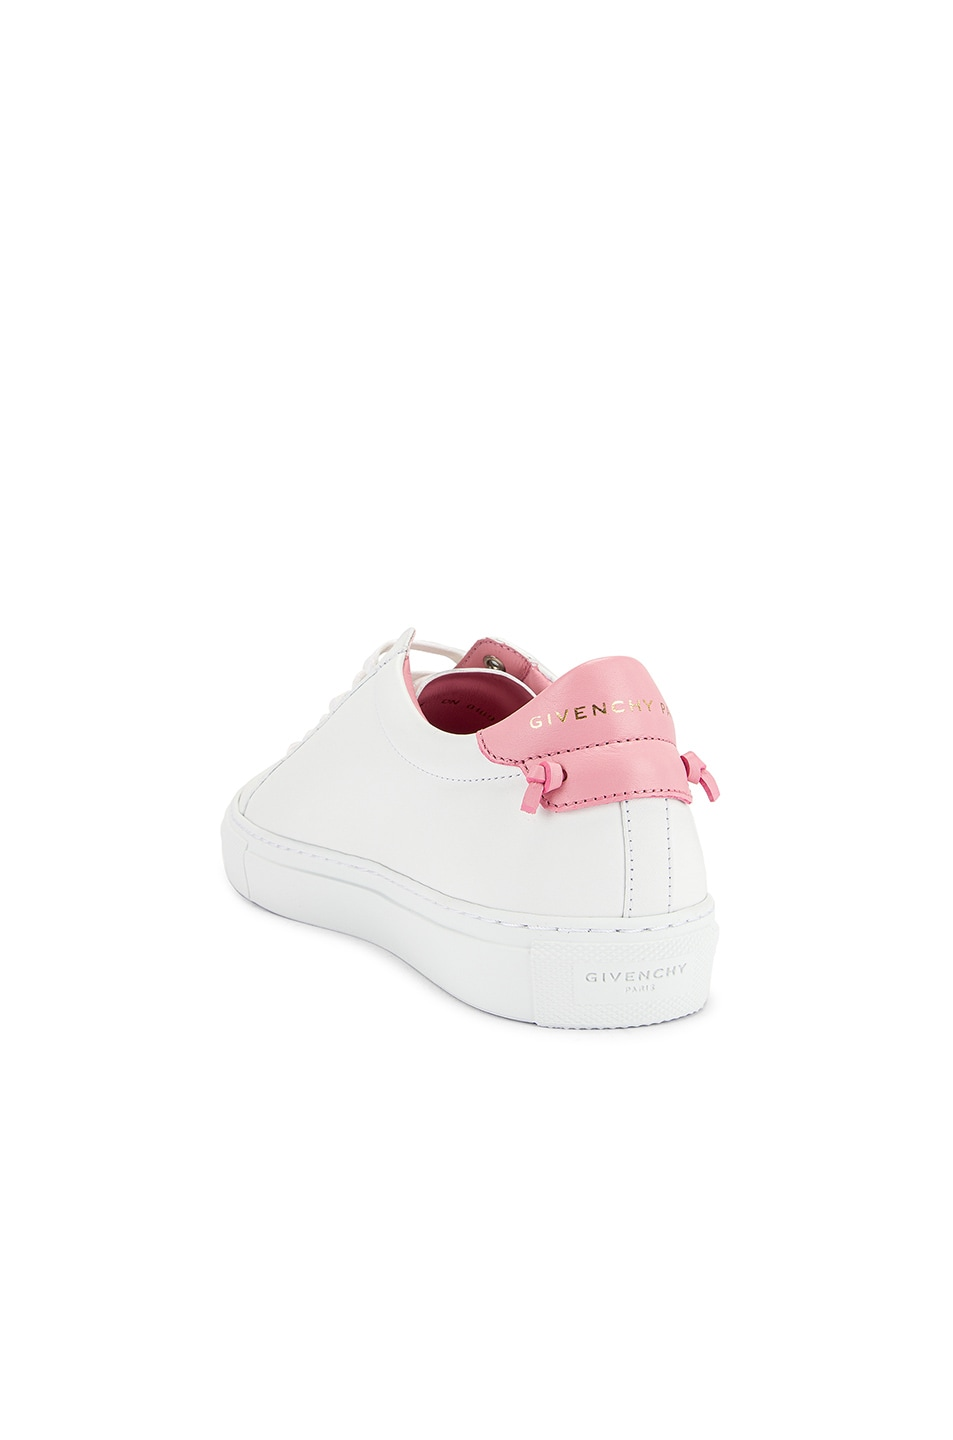 Image 3 of Givenchy Urban Street Low Sneaker in Bubble Gum